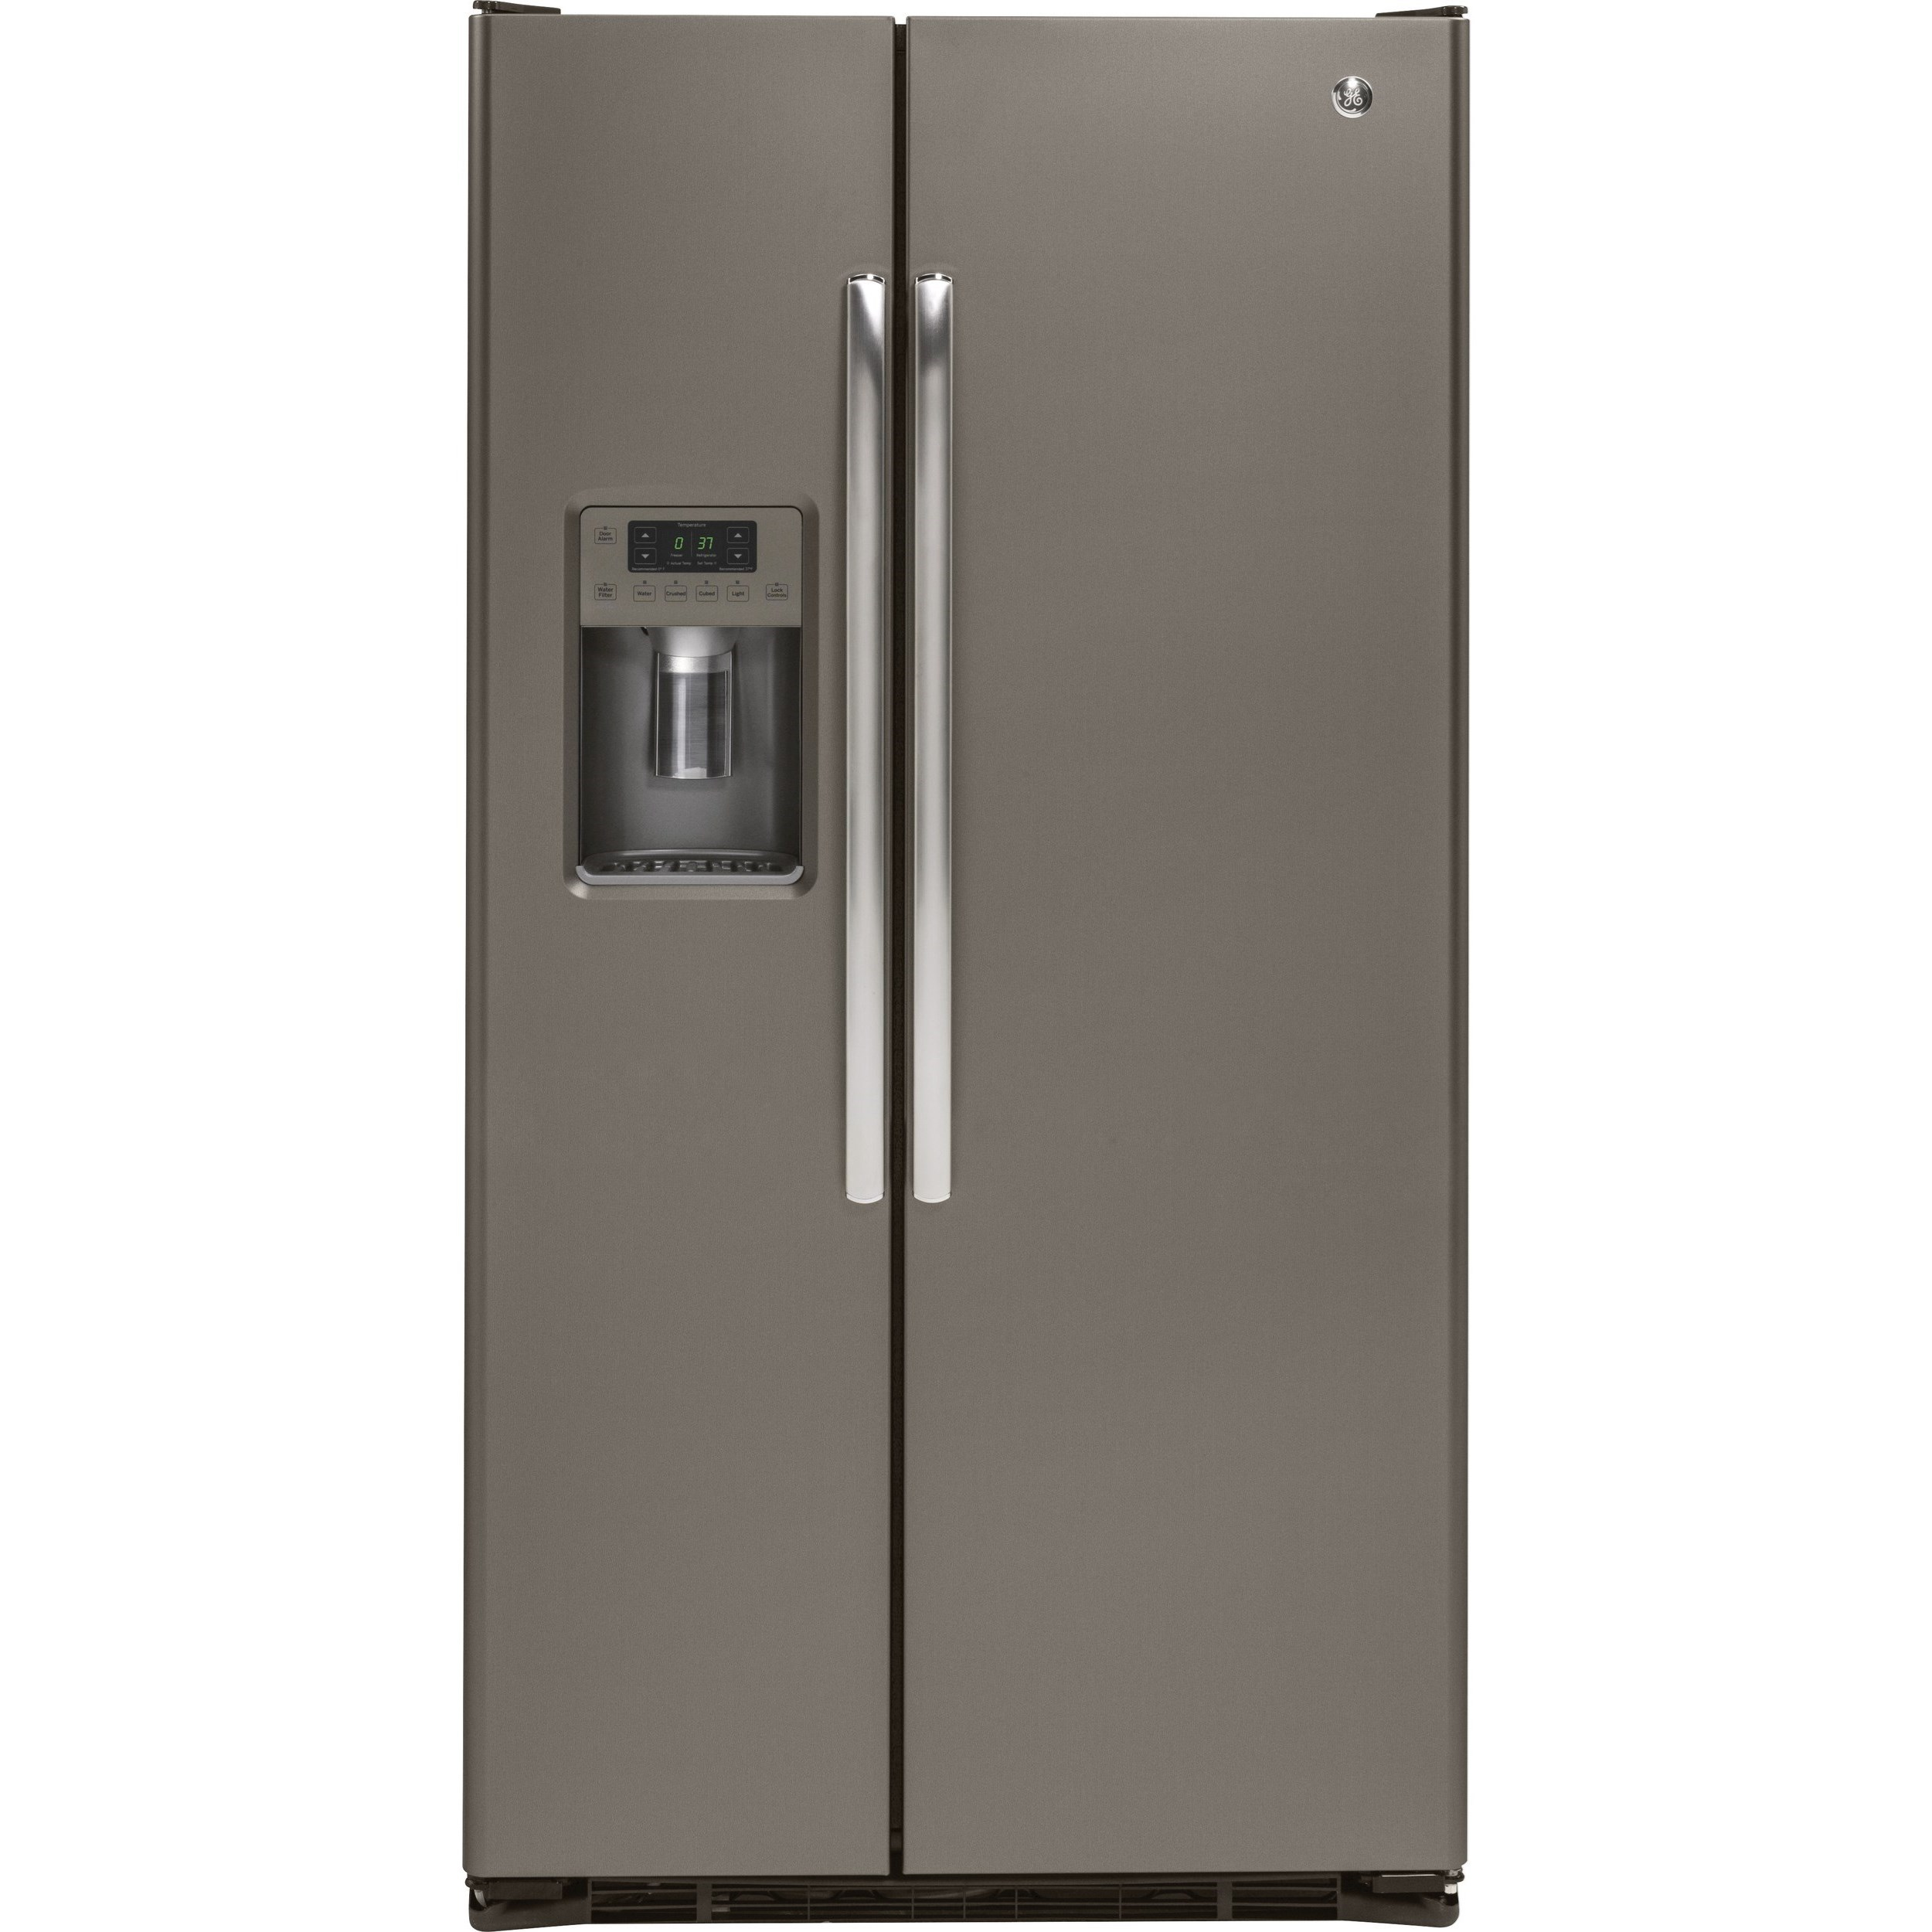 GE Series Side-By-Side Refrigerators GE 21.9 Cu. Ft.Counter-Depth Refrigerator by GE Appliances at Furniture and ApplianceMart